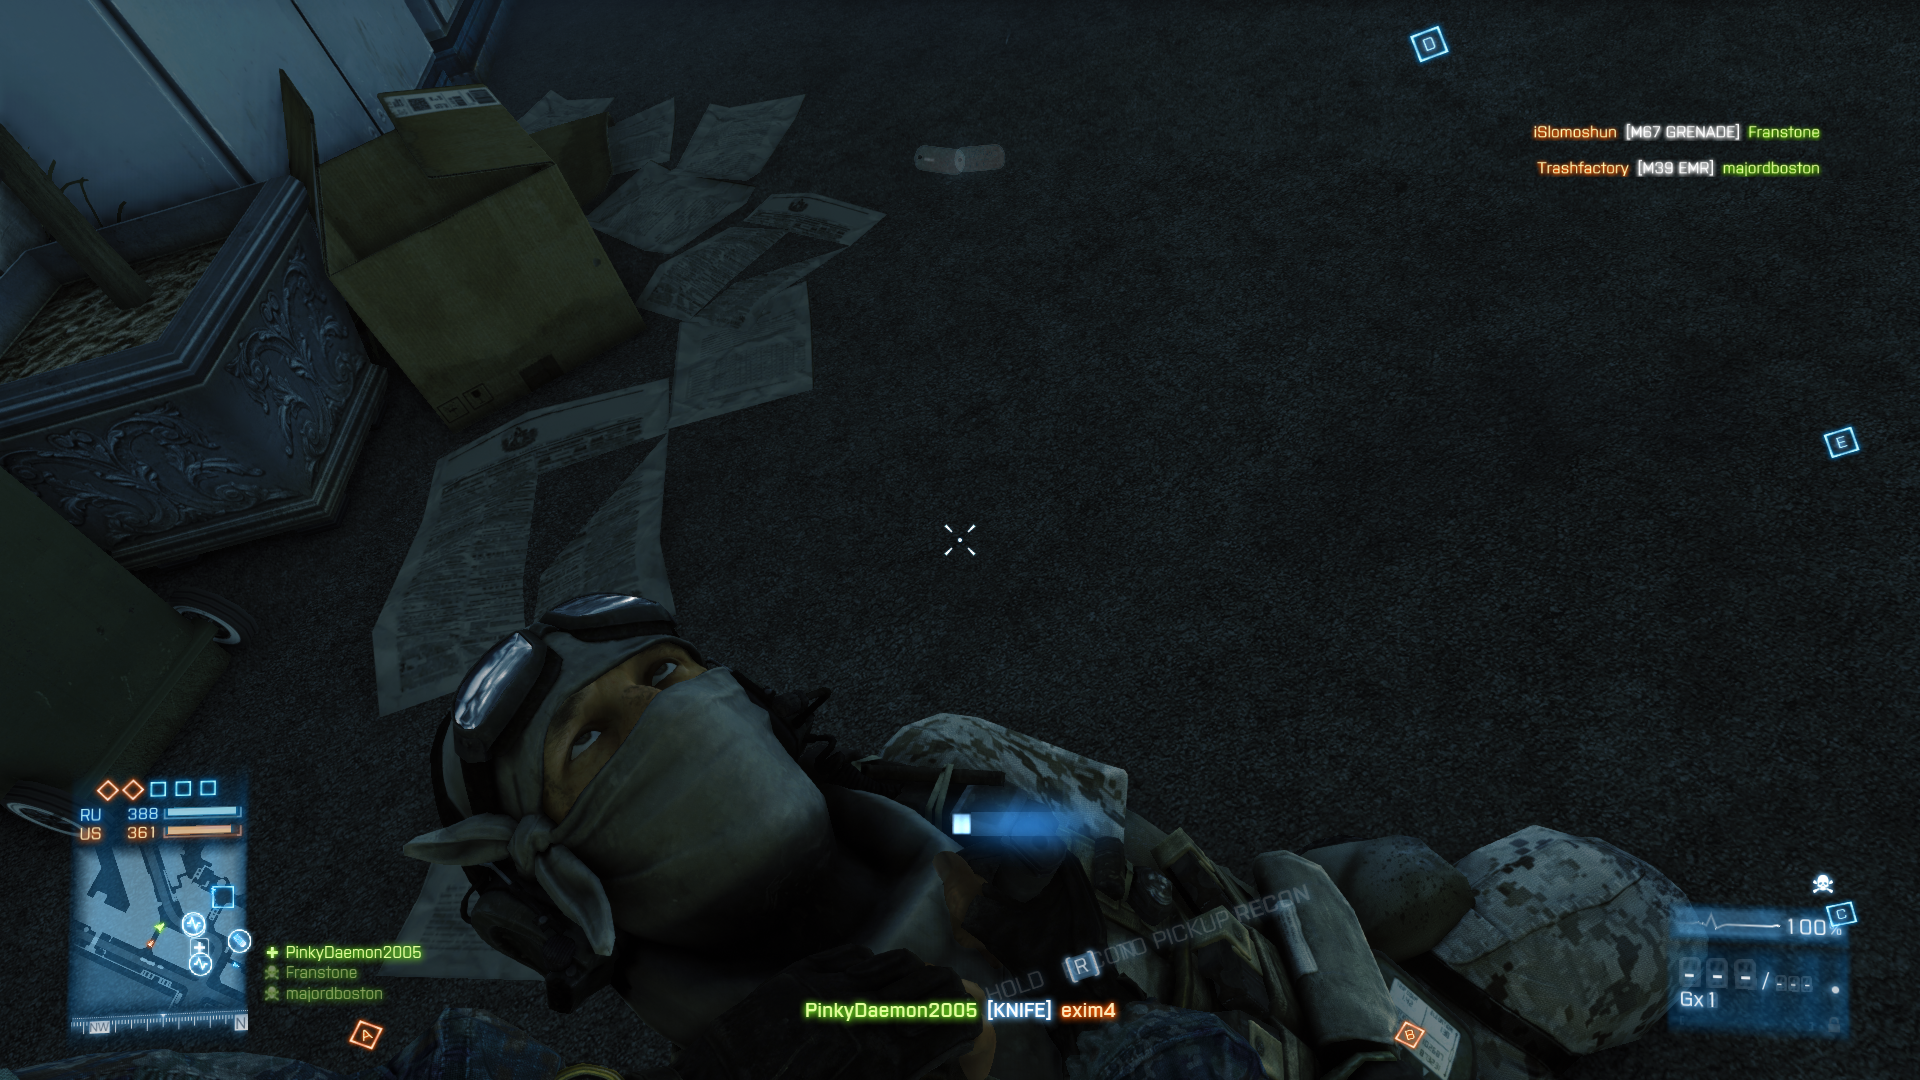 Battlefield 3 Windows Knives no longer kill instantly from all directions, but if you sneak up on a poor schmuck you can get an instant stealth kill.